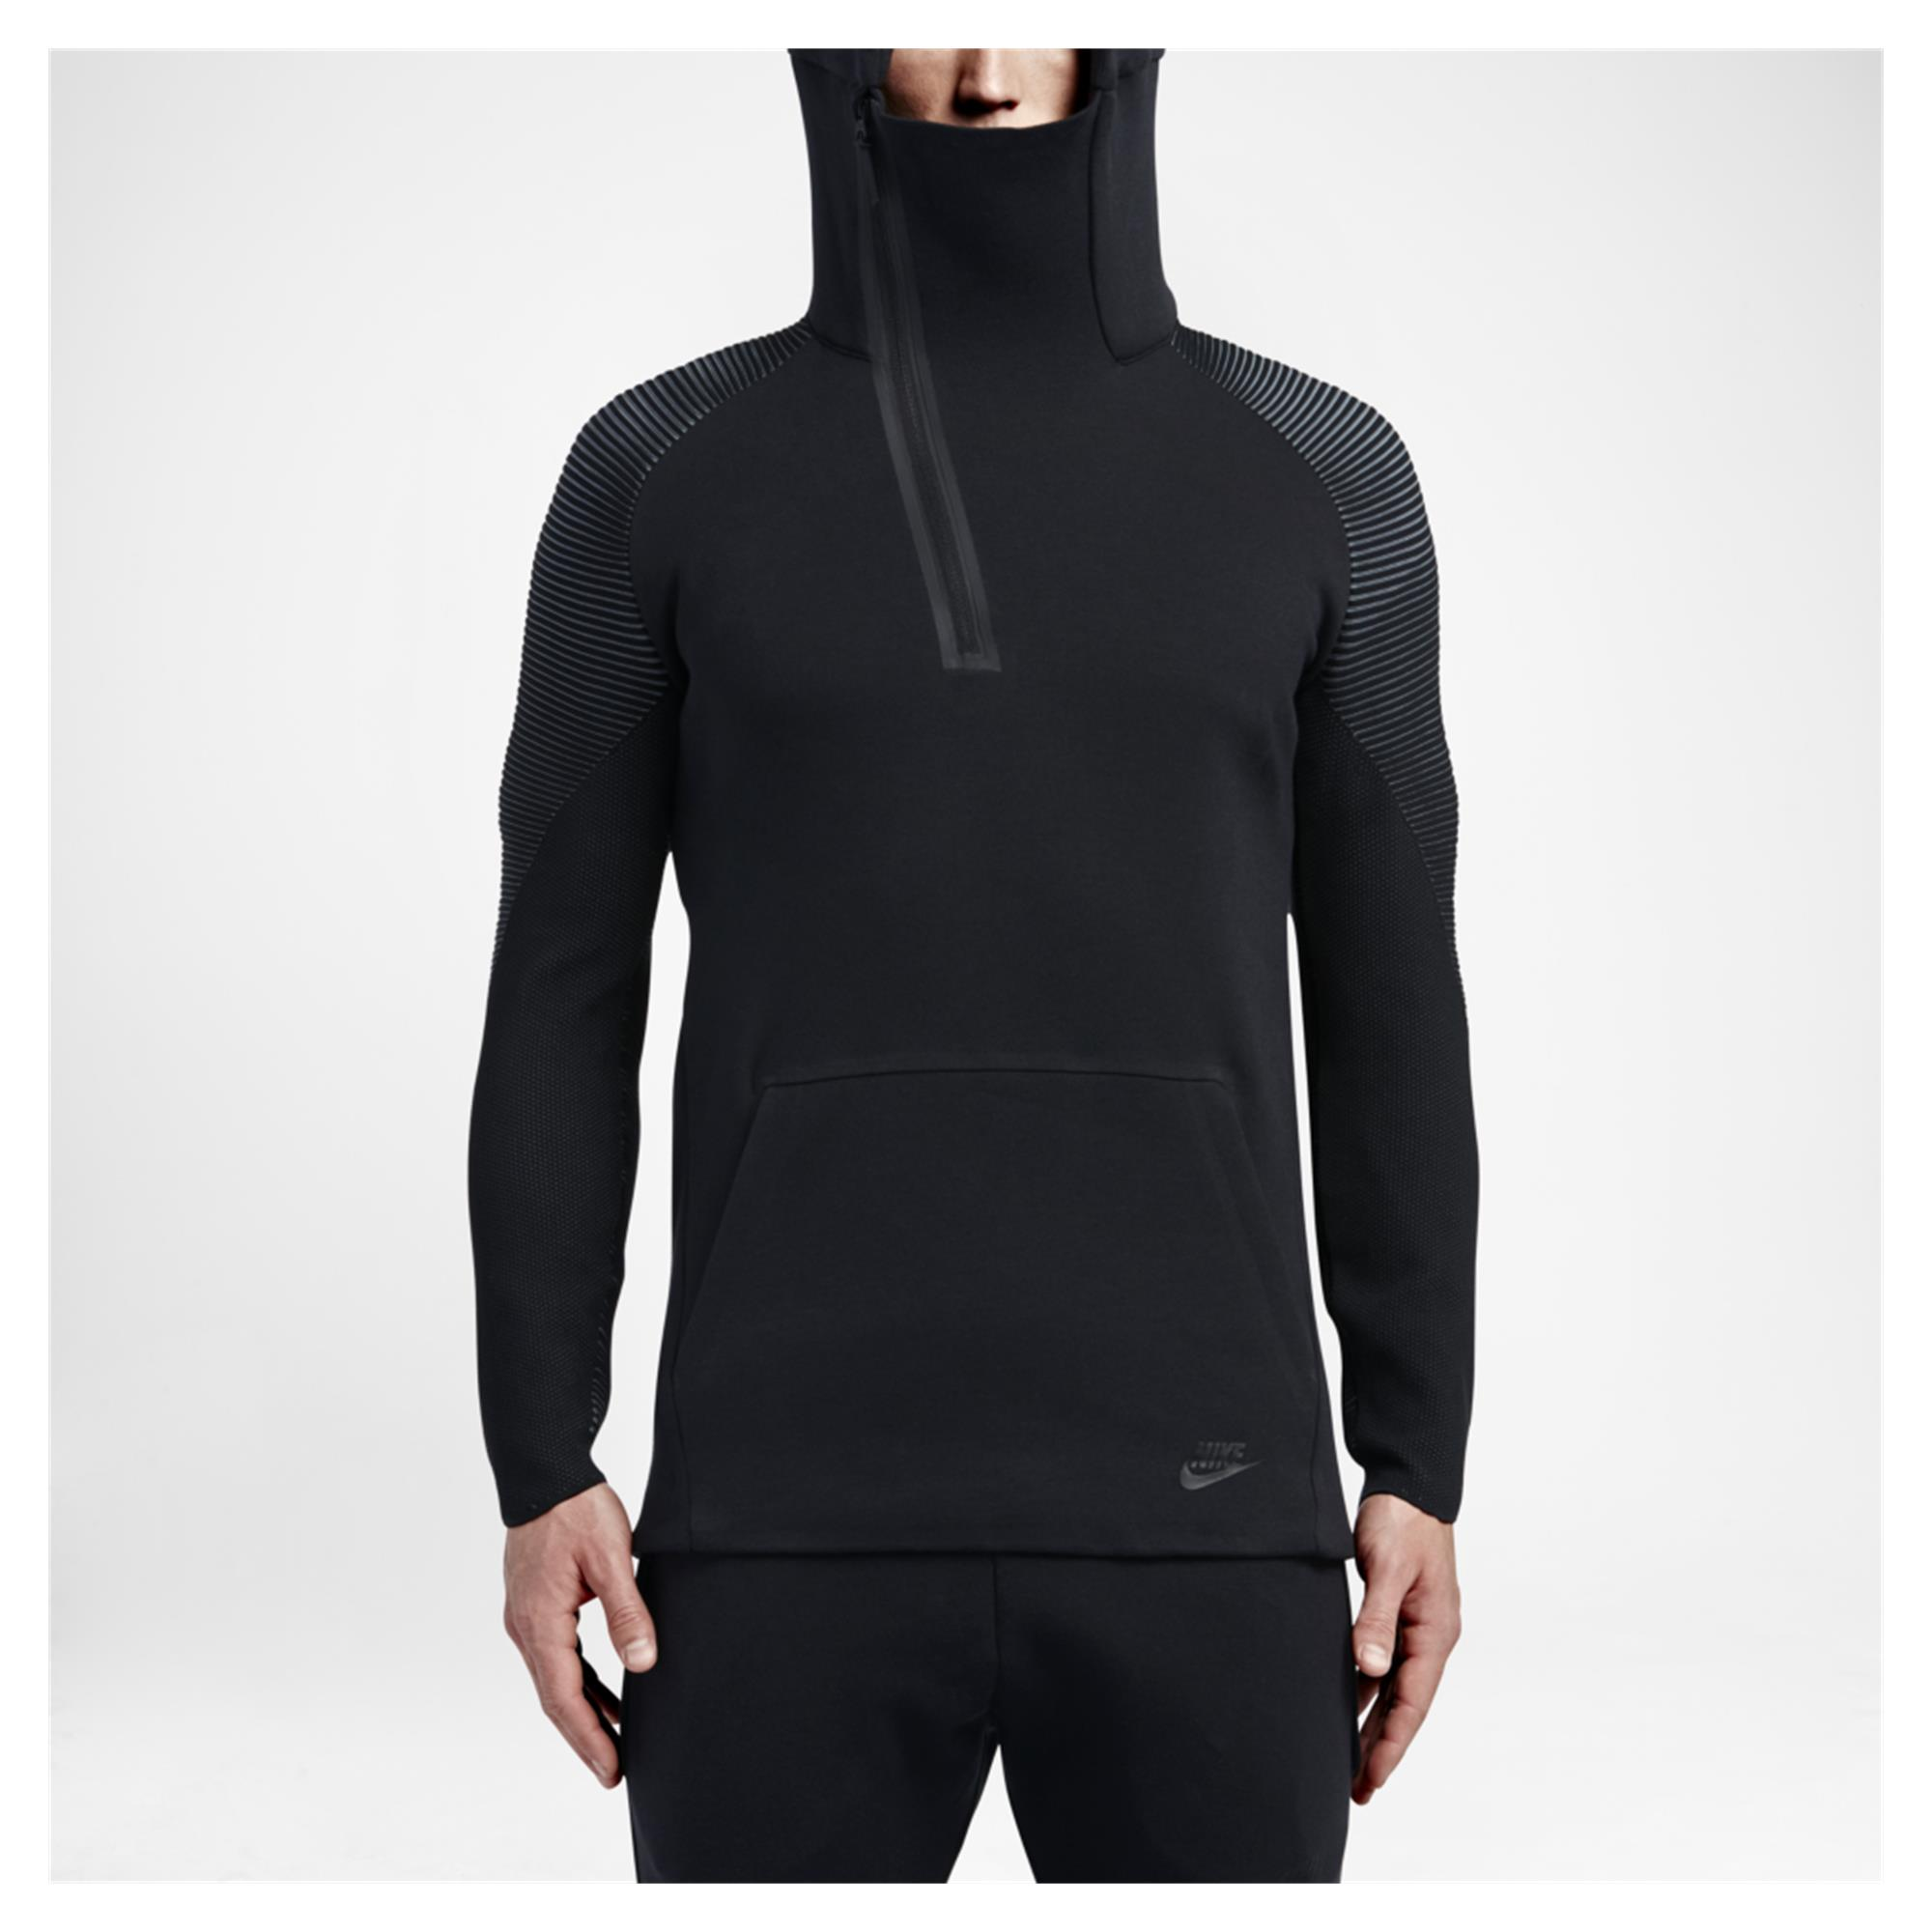 BLUSÃO NIKE TECH FLEECE MASCULINO1.jpg